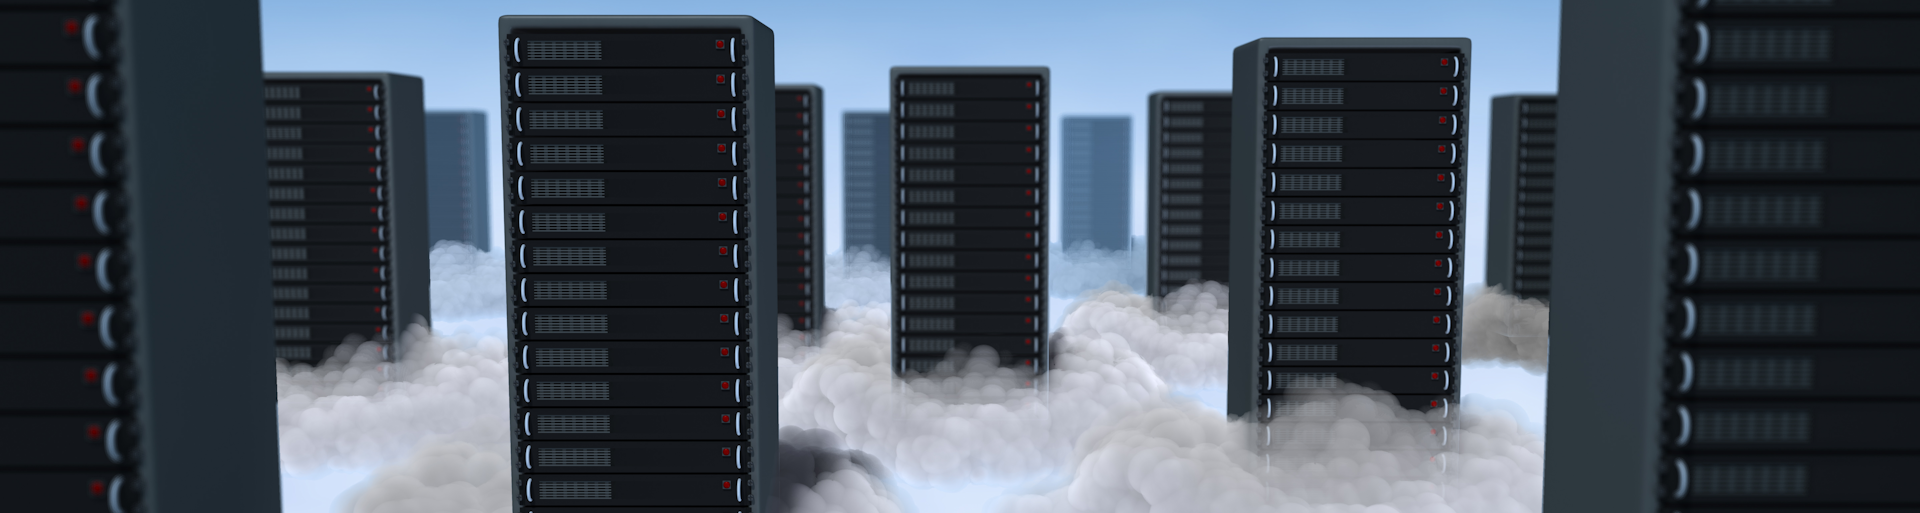 datacenter cloud solutions